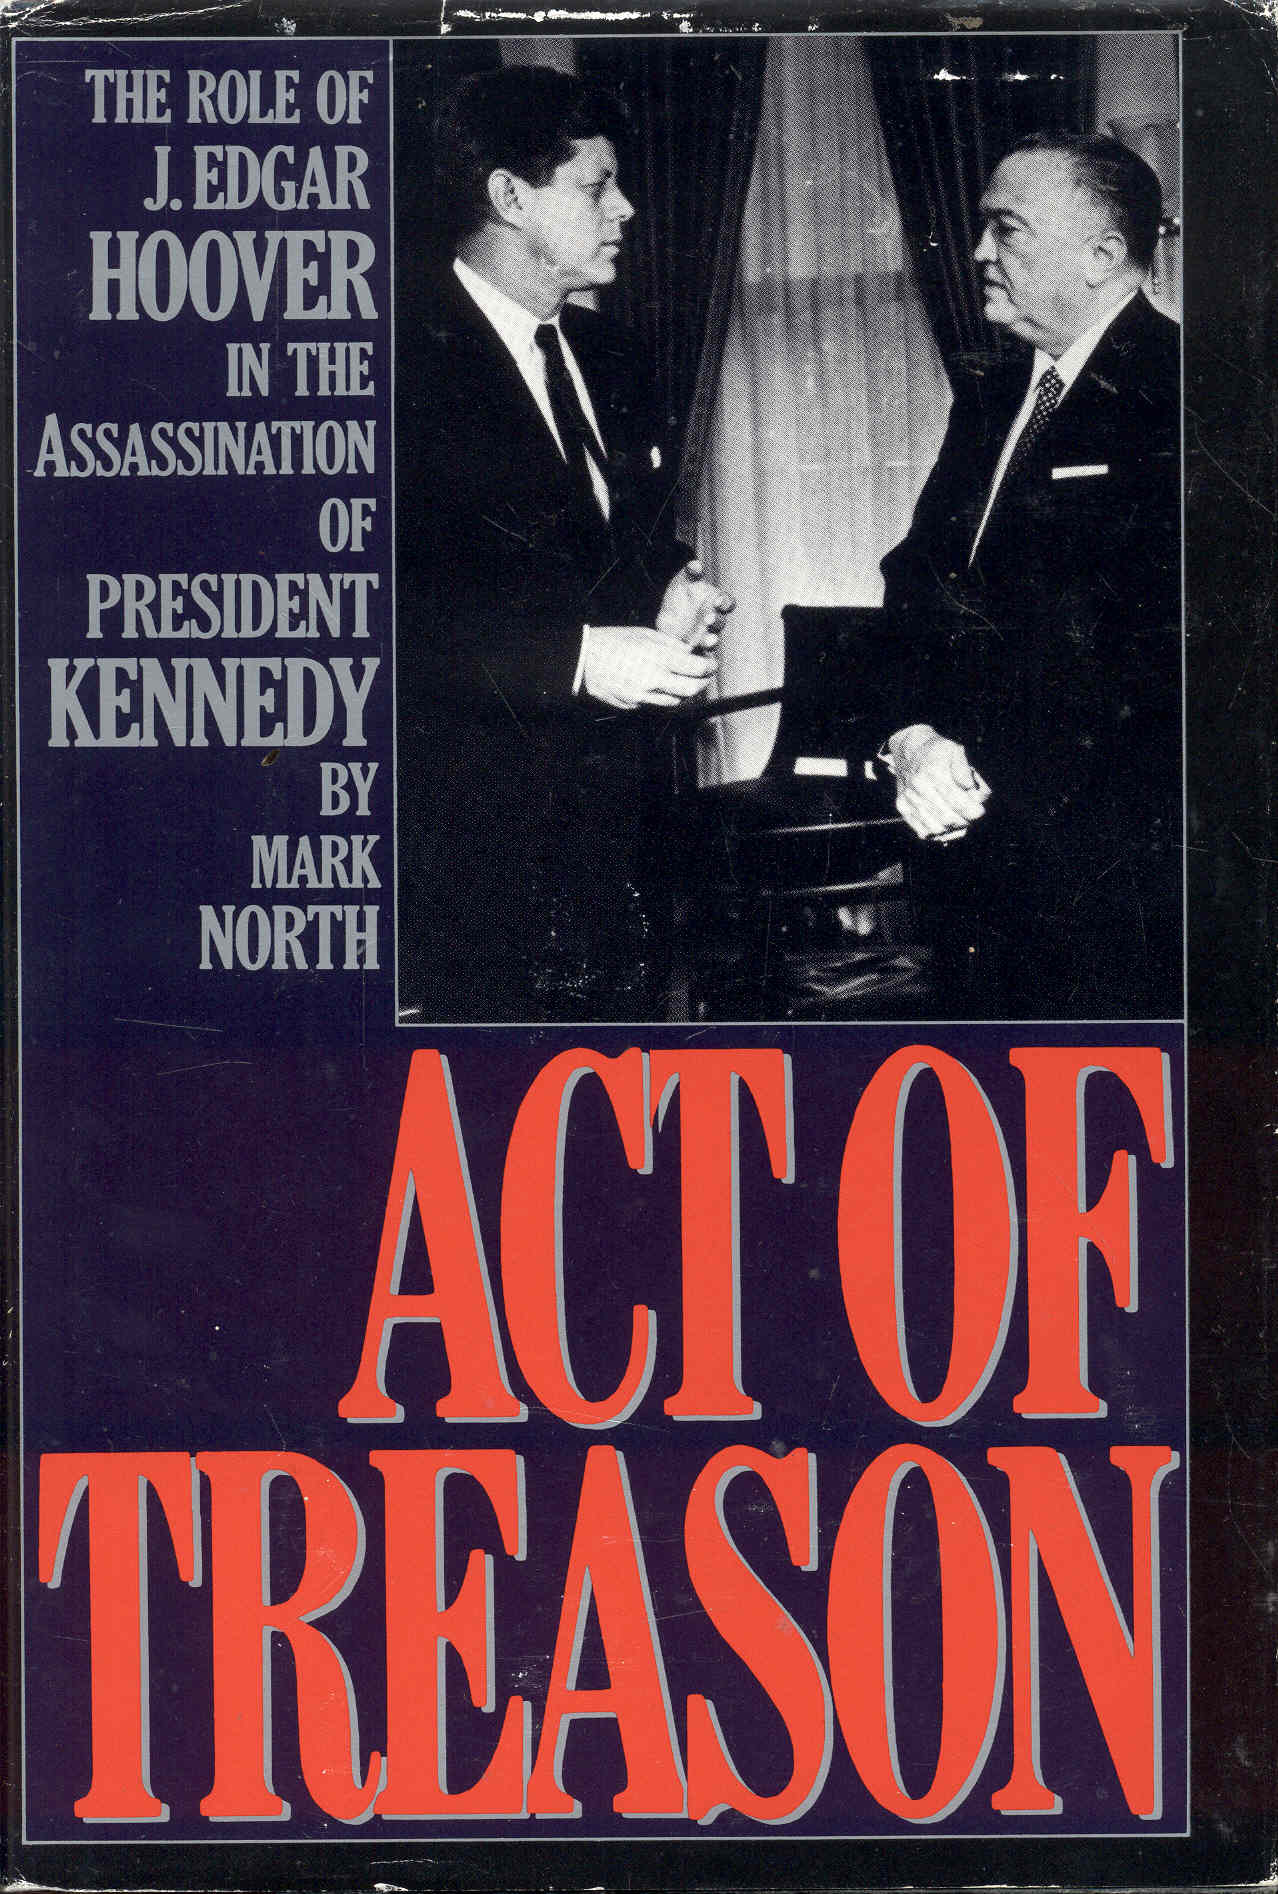 Image for Act of Treason: The Role of J. Edgar Hoover in the Assassination of President Kennedy